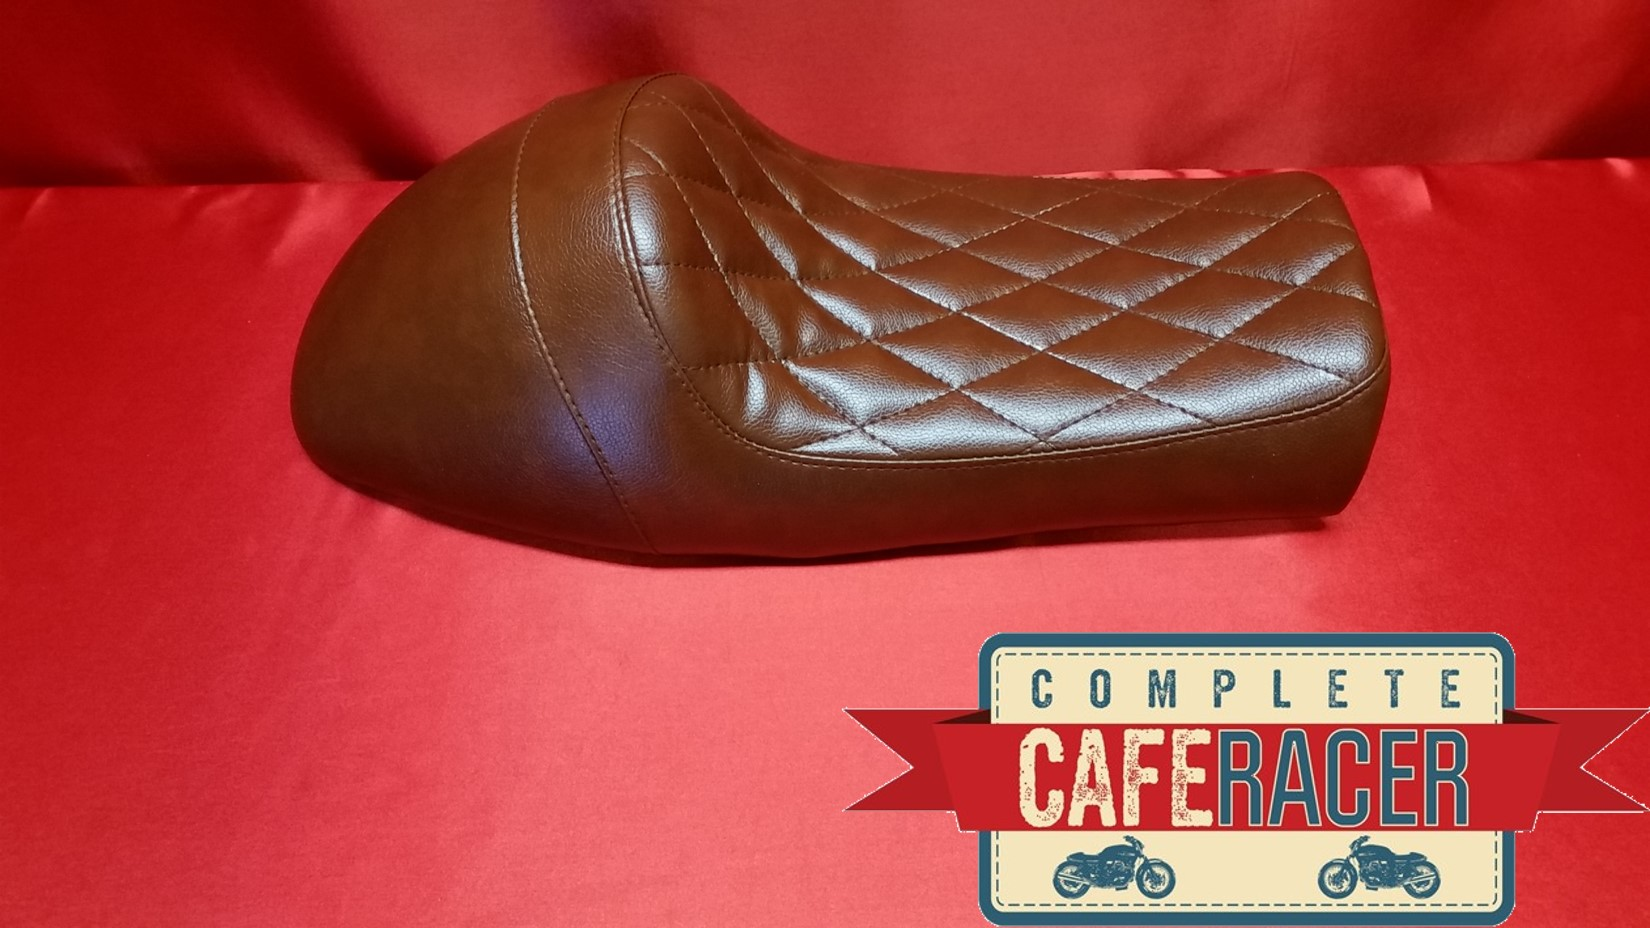 (LS18) CAFE RACER BRAT SCRAMBLER FLAT TRACKER LEATHERETTE SEAT IN BROWN DIAMOND